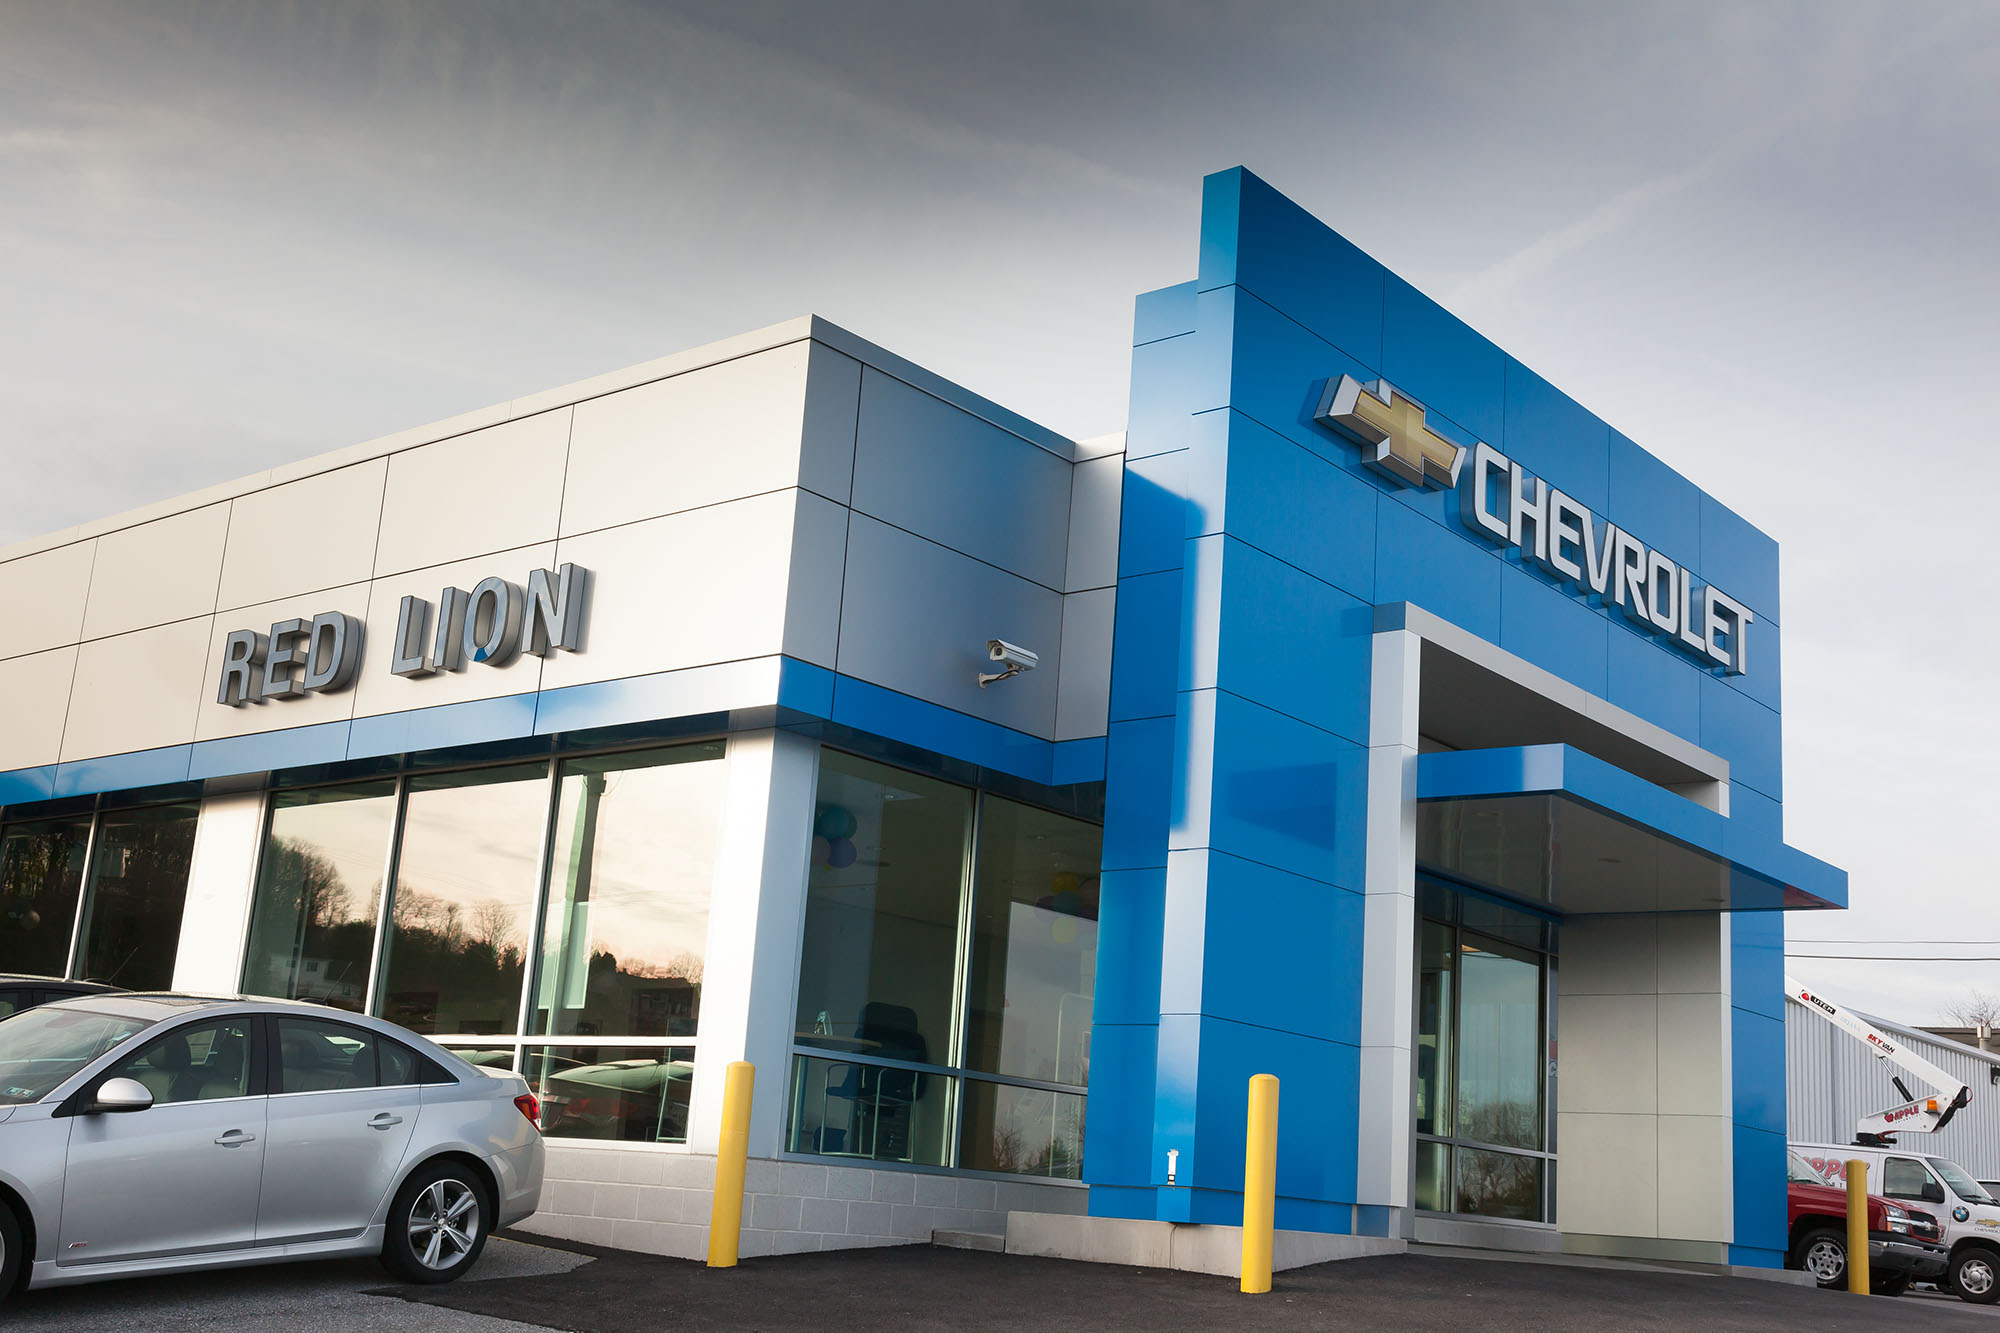 Red Lion Chevrolet, Red Lion, PA